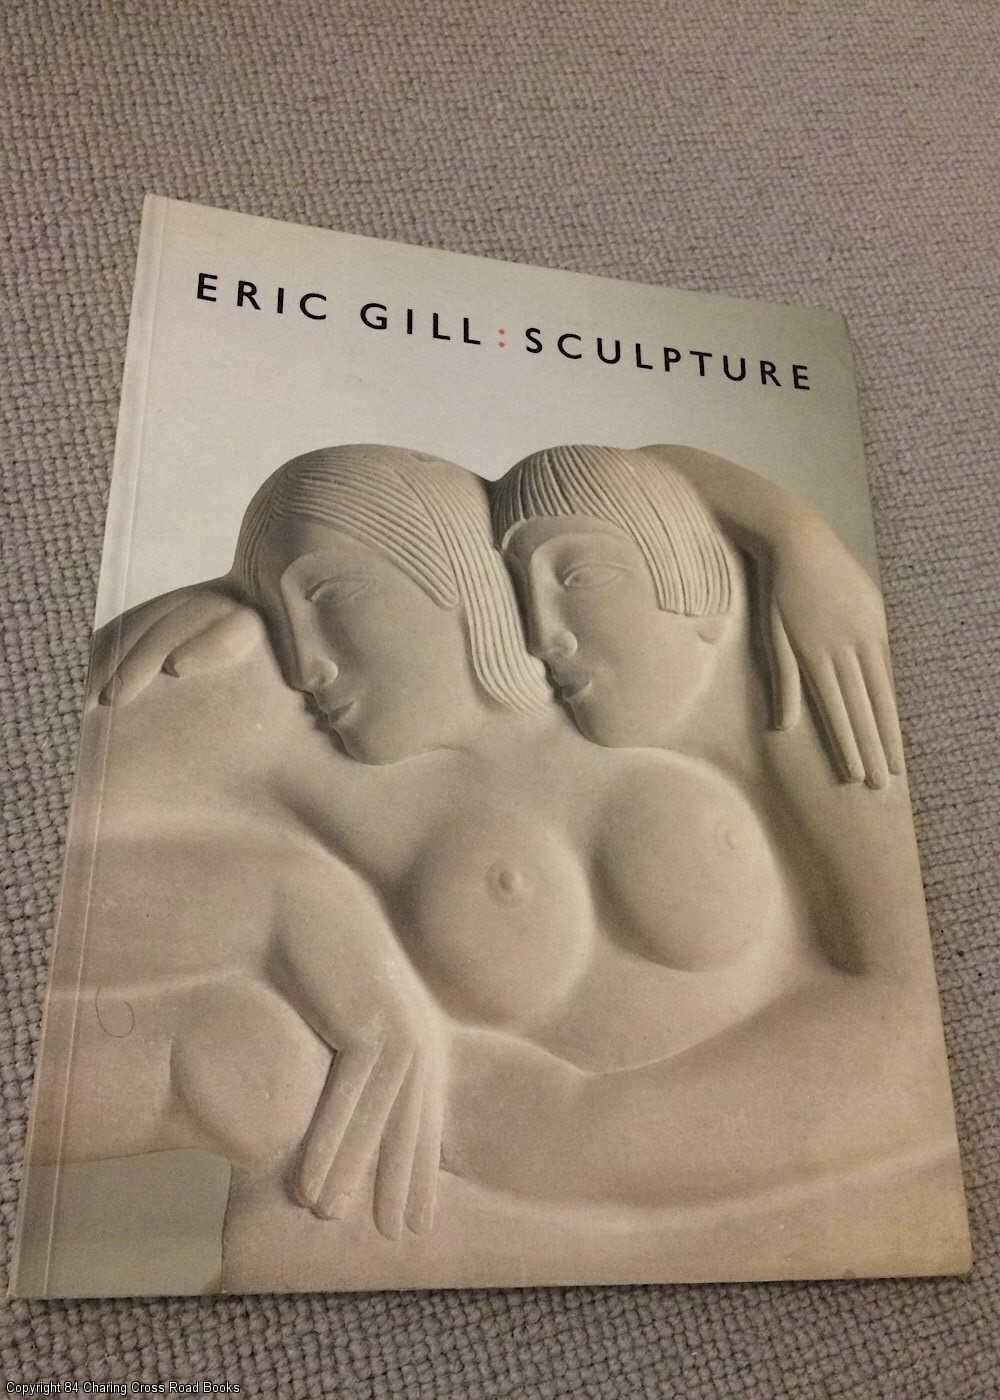 BARBICAN ART GALLERY, COLLINS, JUDY - Eric Gill: Sculpture